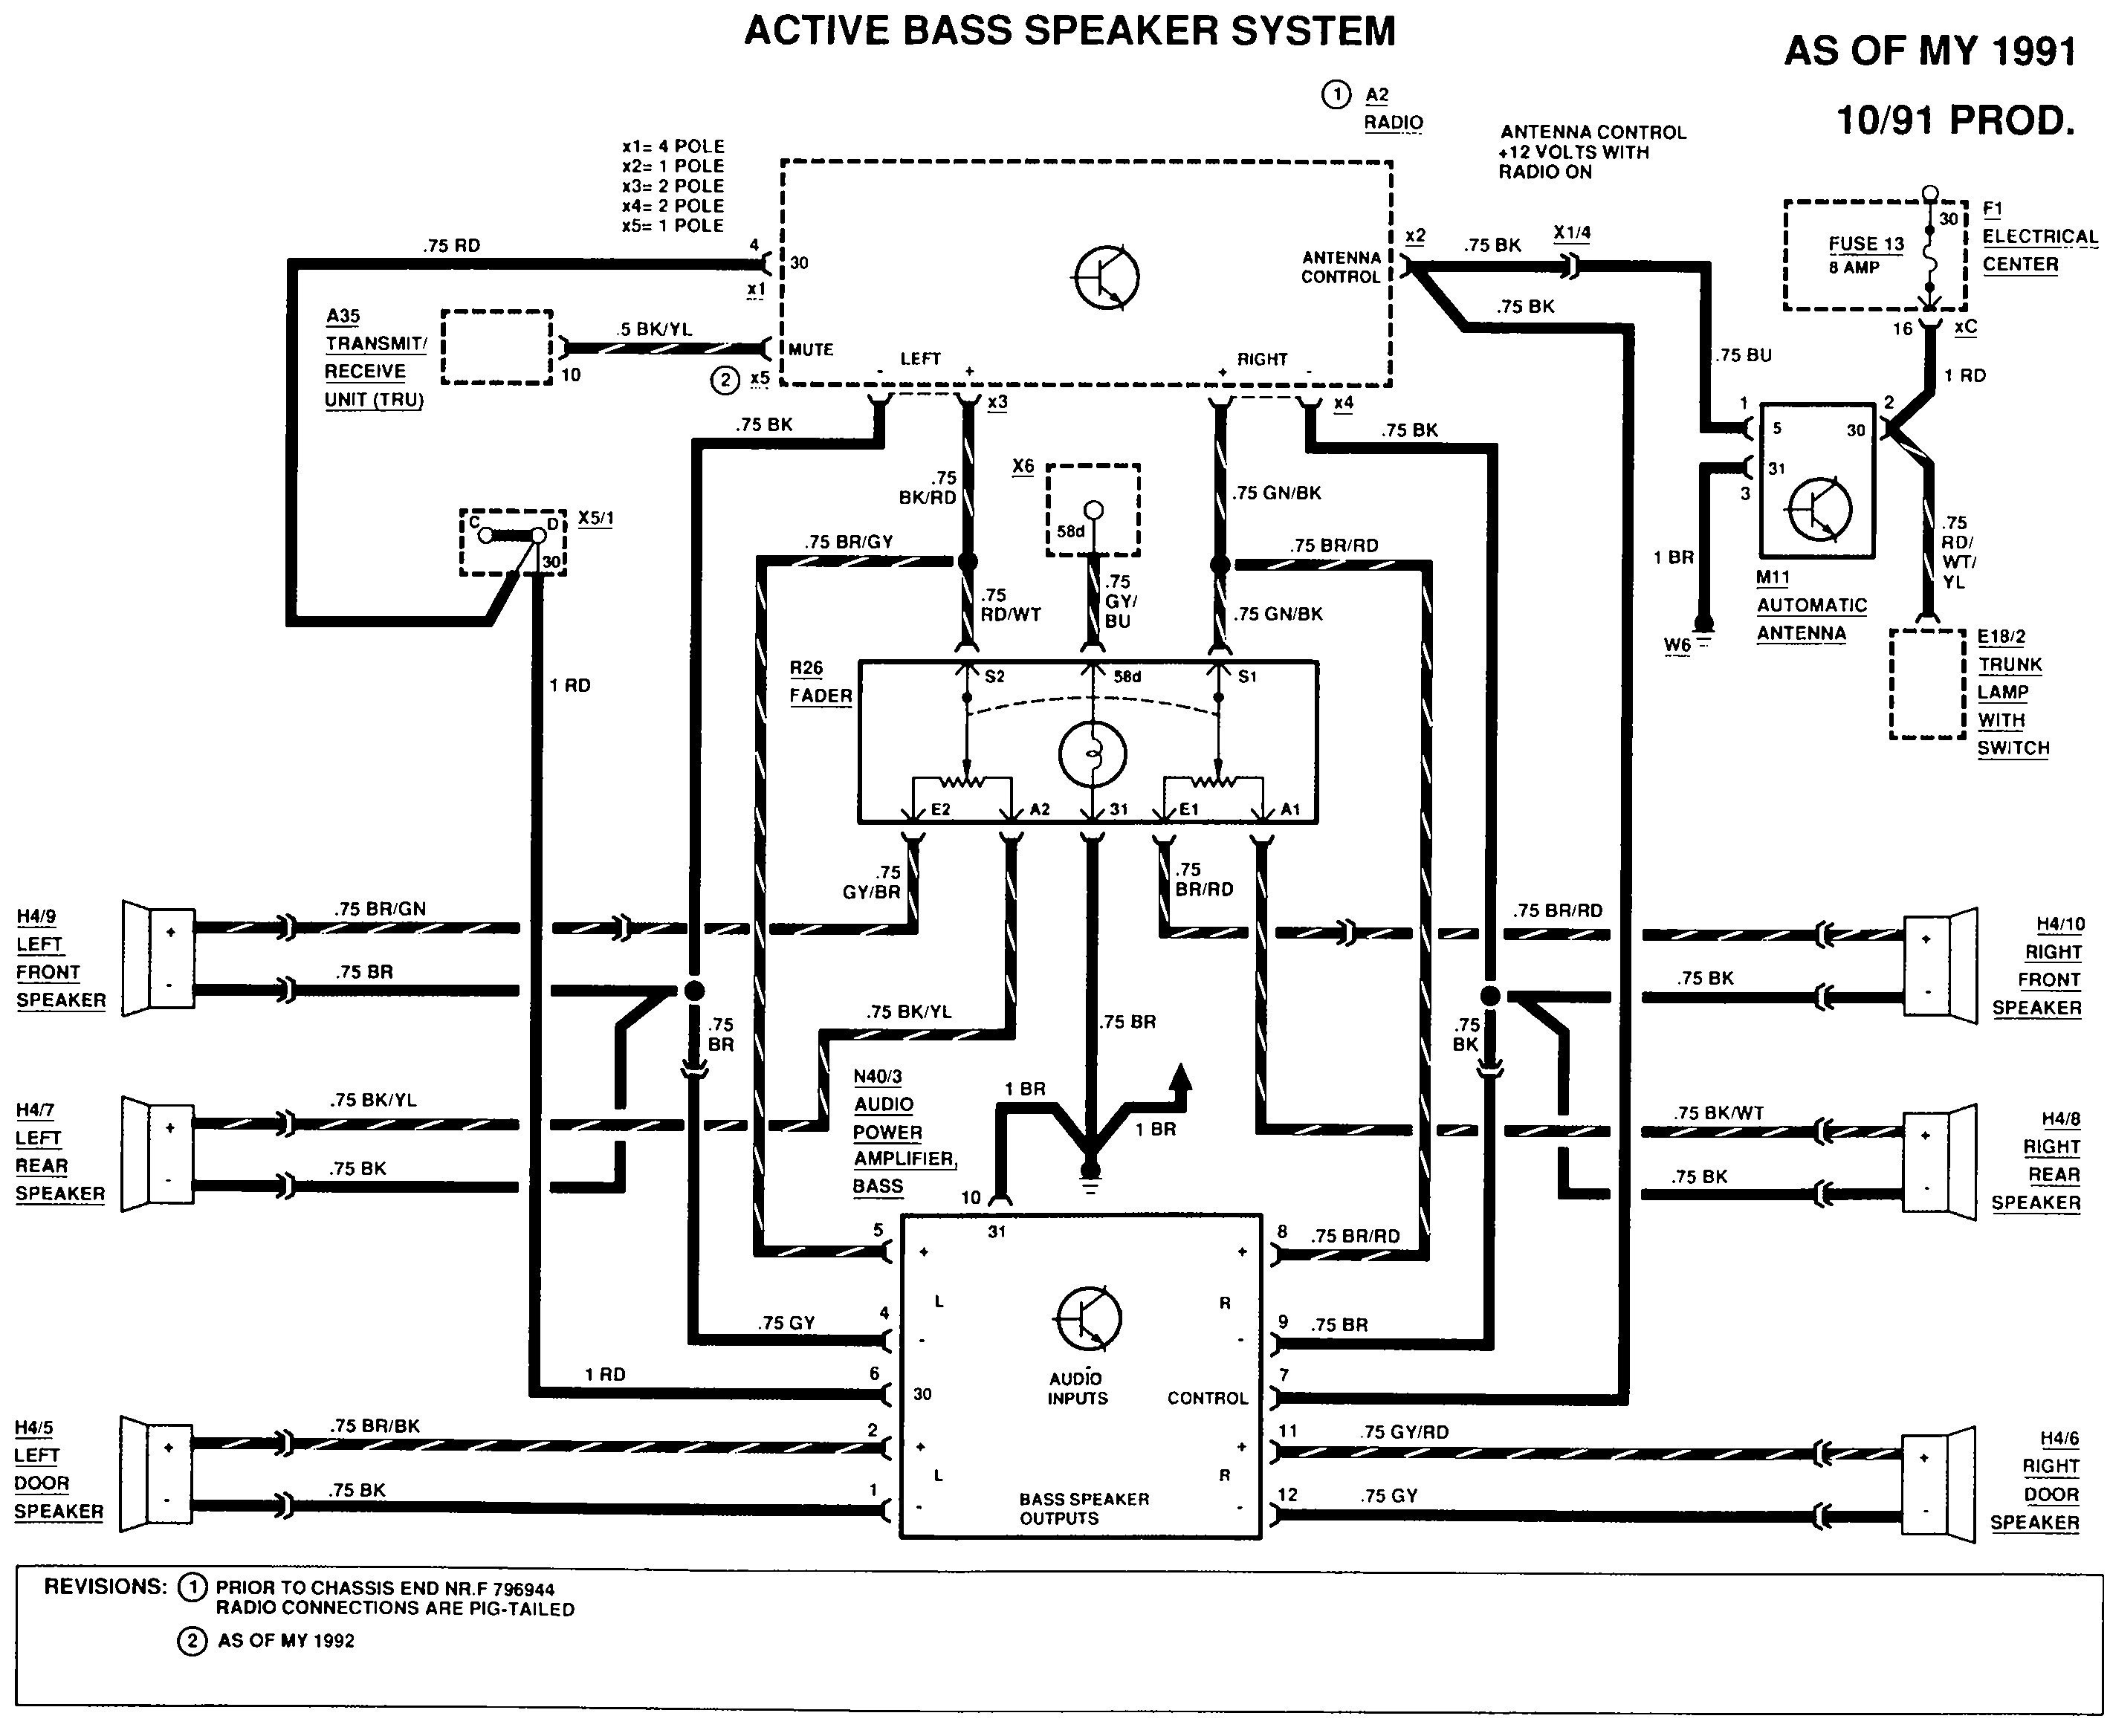 Mercedes Benz Engine Diagram Mercedes Benz Cruise Control Wiring Diagram Data Wiring Diagrams • Of Mercedes Benz Engine Diagram Mercedes Benz Parts Diagram – Diagram Car Best Car Parts and